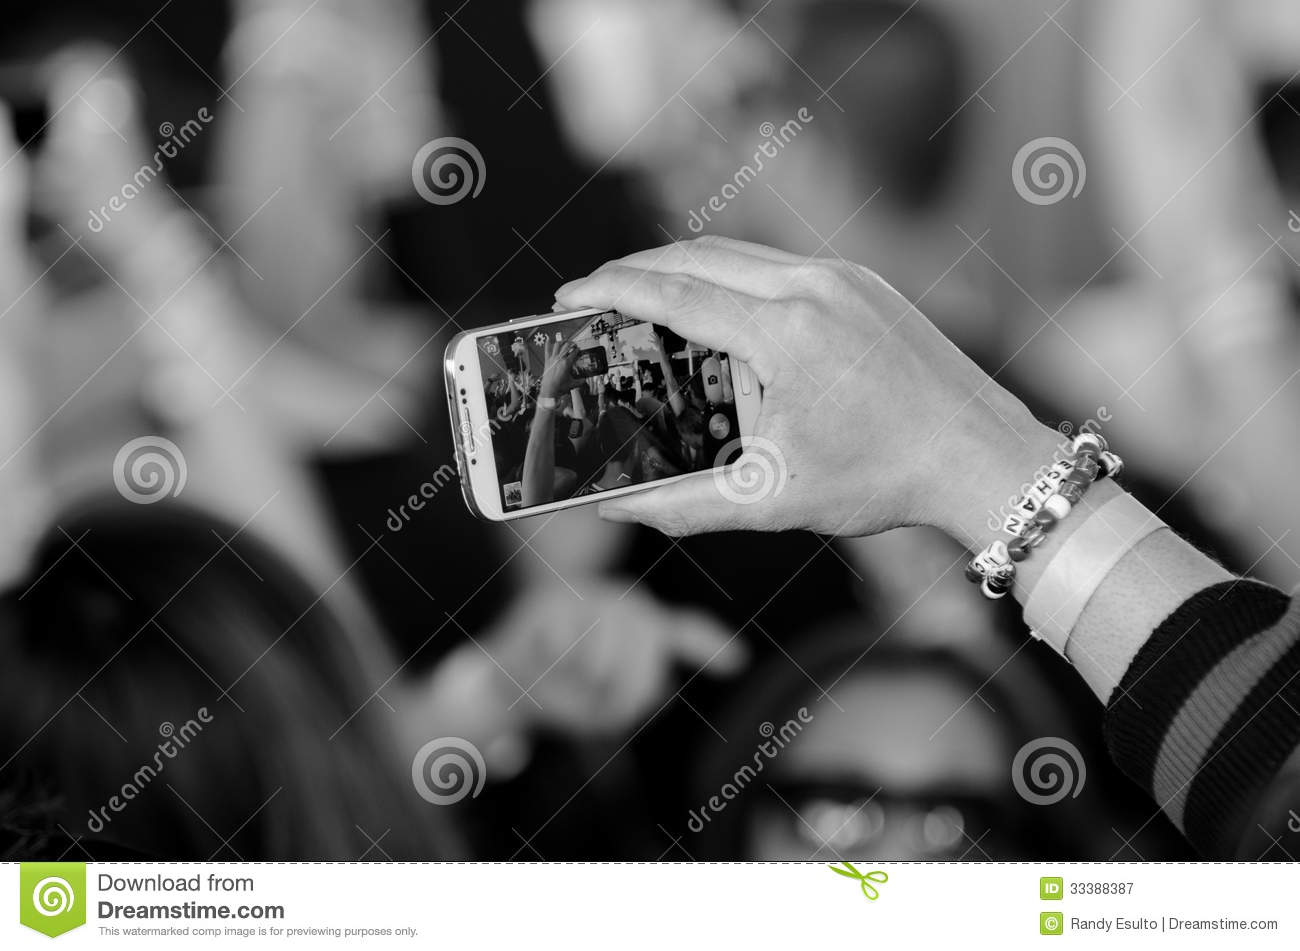 how to watch someone on their phone